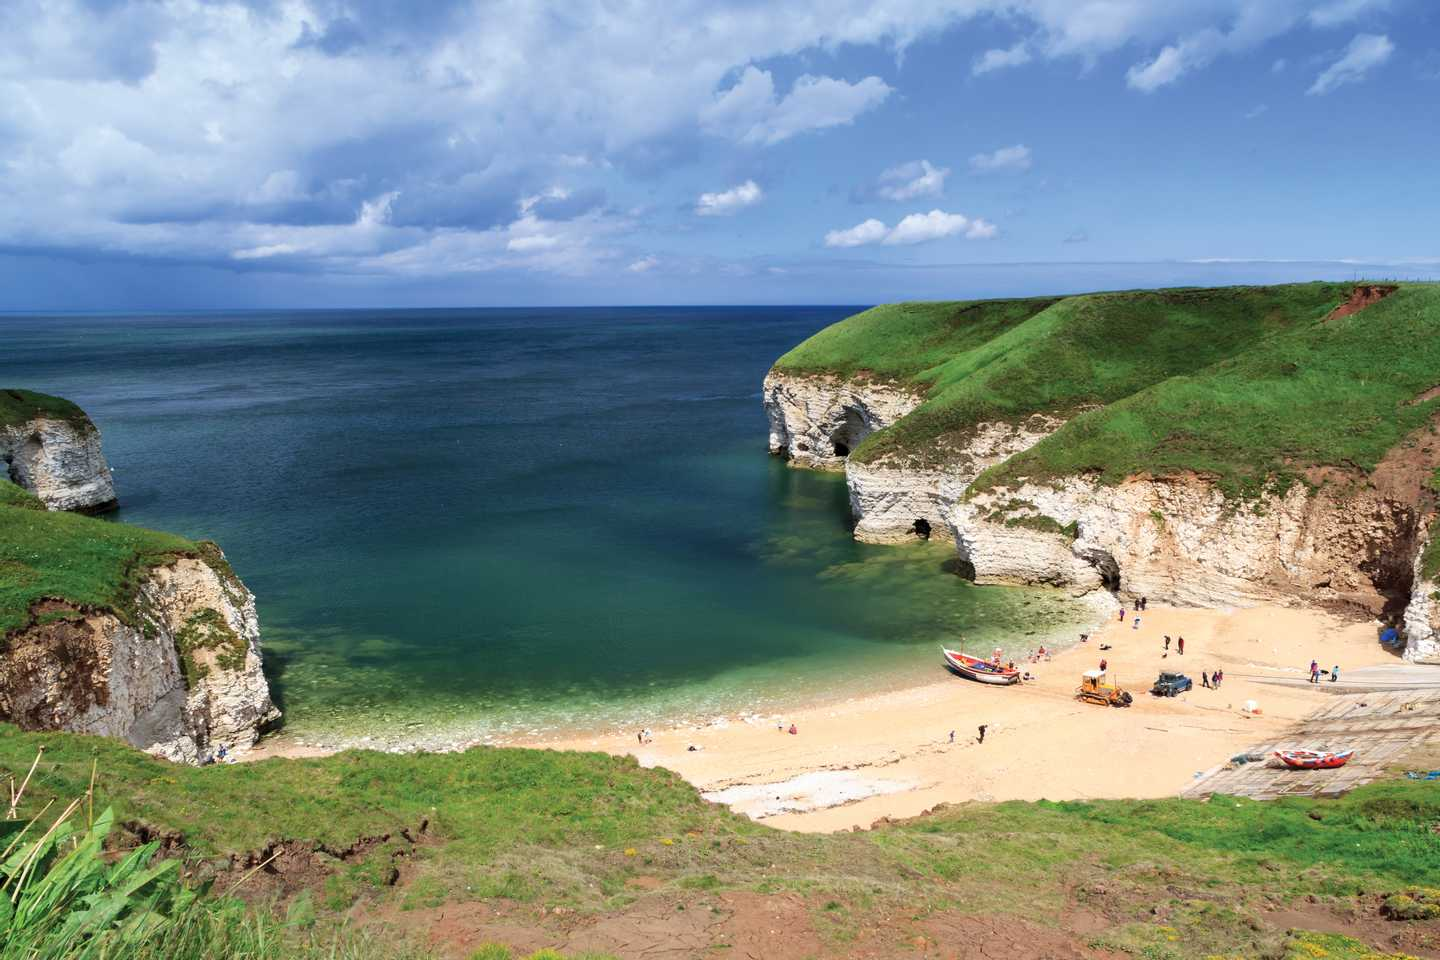 Flamborough beach near Bridlington in Yorkshire